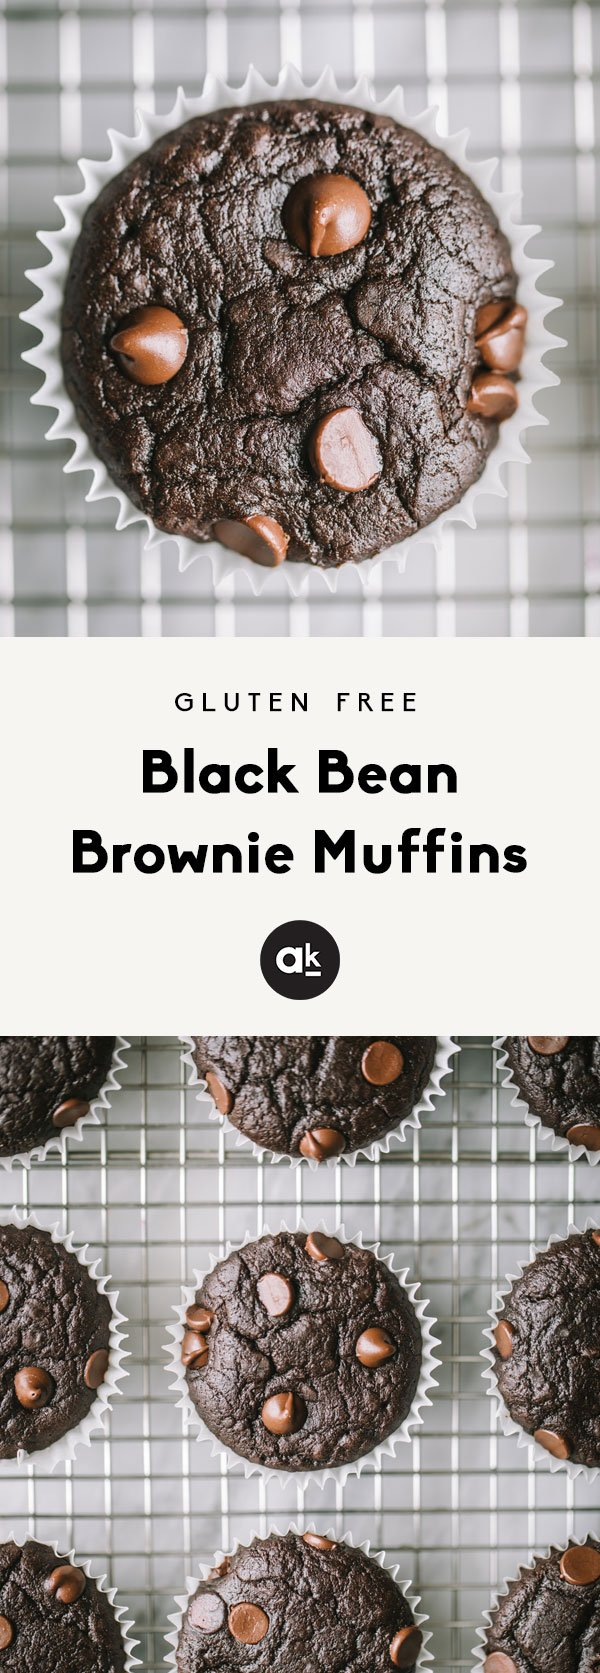 Flourless black bean muffins that taste like a delicious, cakey brownie! These easy, fiber packed muffins are gluten free and the perfect healthy treat.